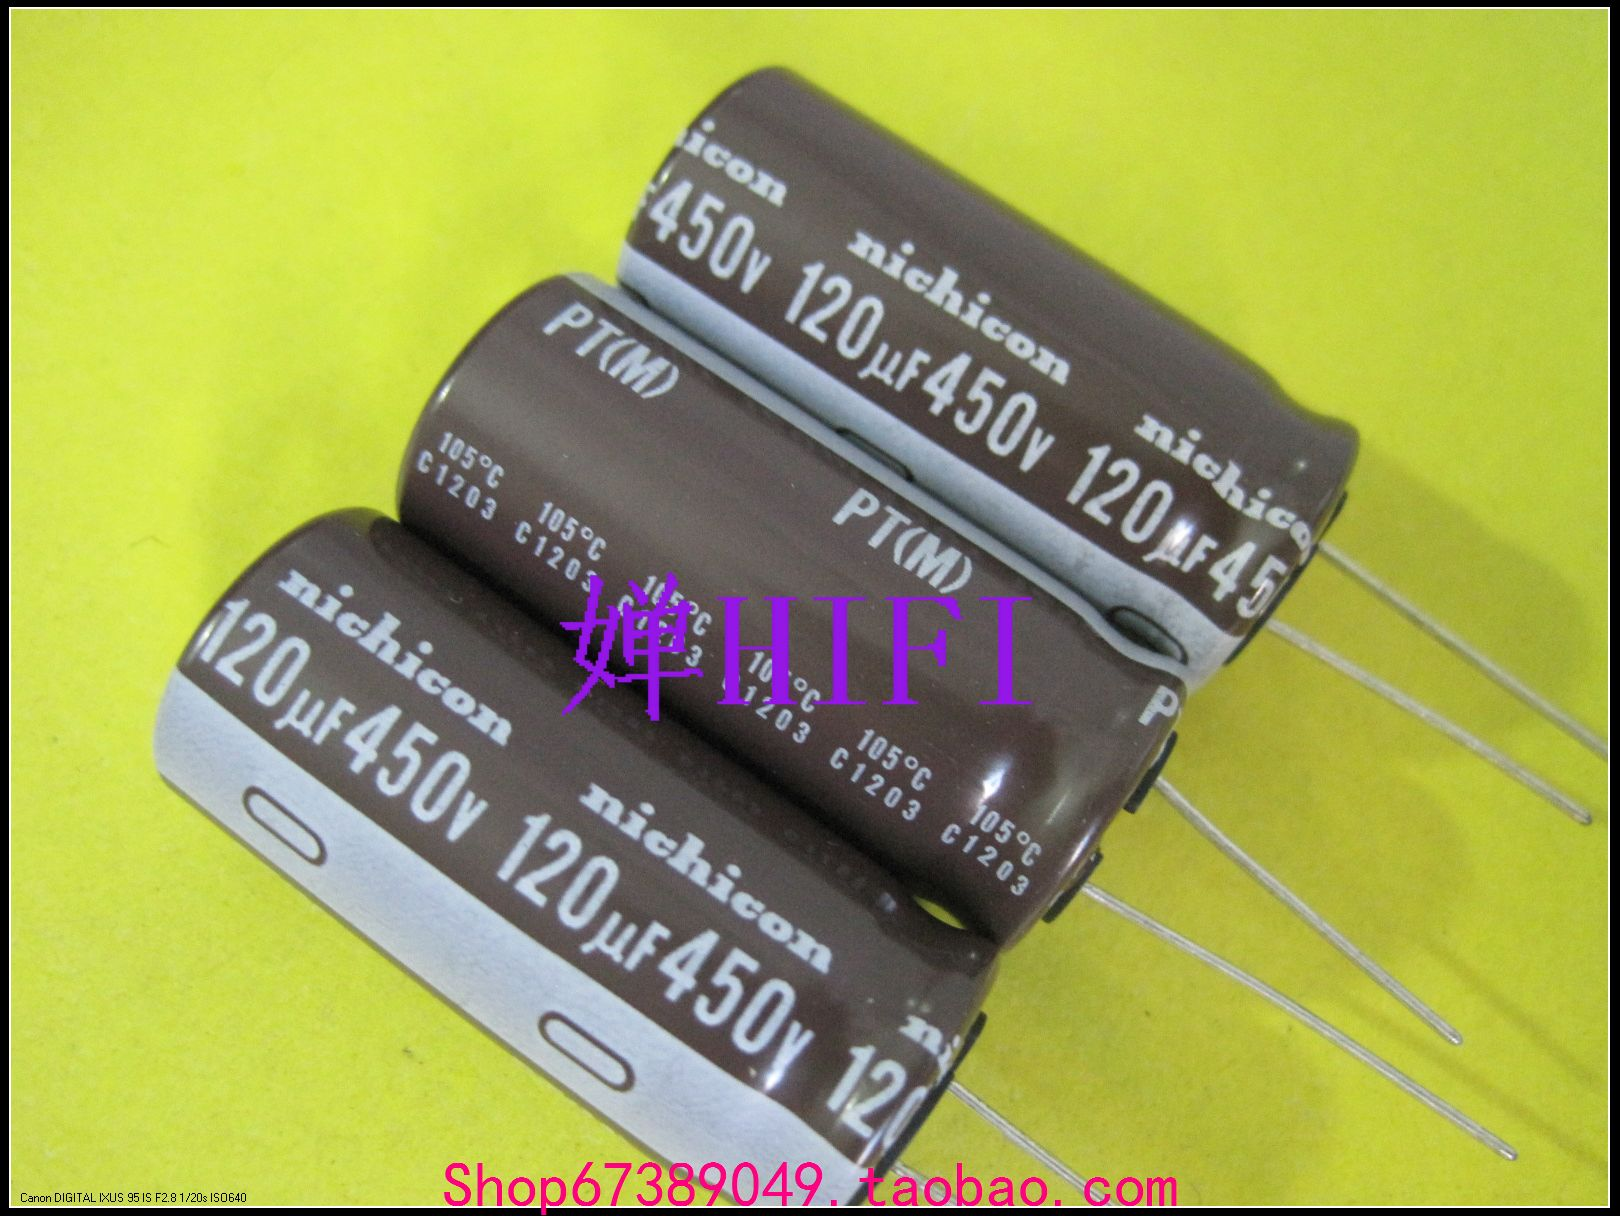 10PCS NICHICON PT 450V120UF 18X40MM electrolytic capacitor 120uF/450V High frequency long life 120UF 450V image